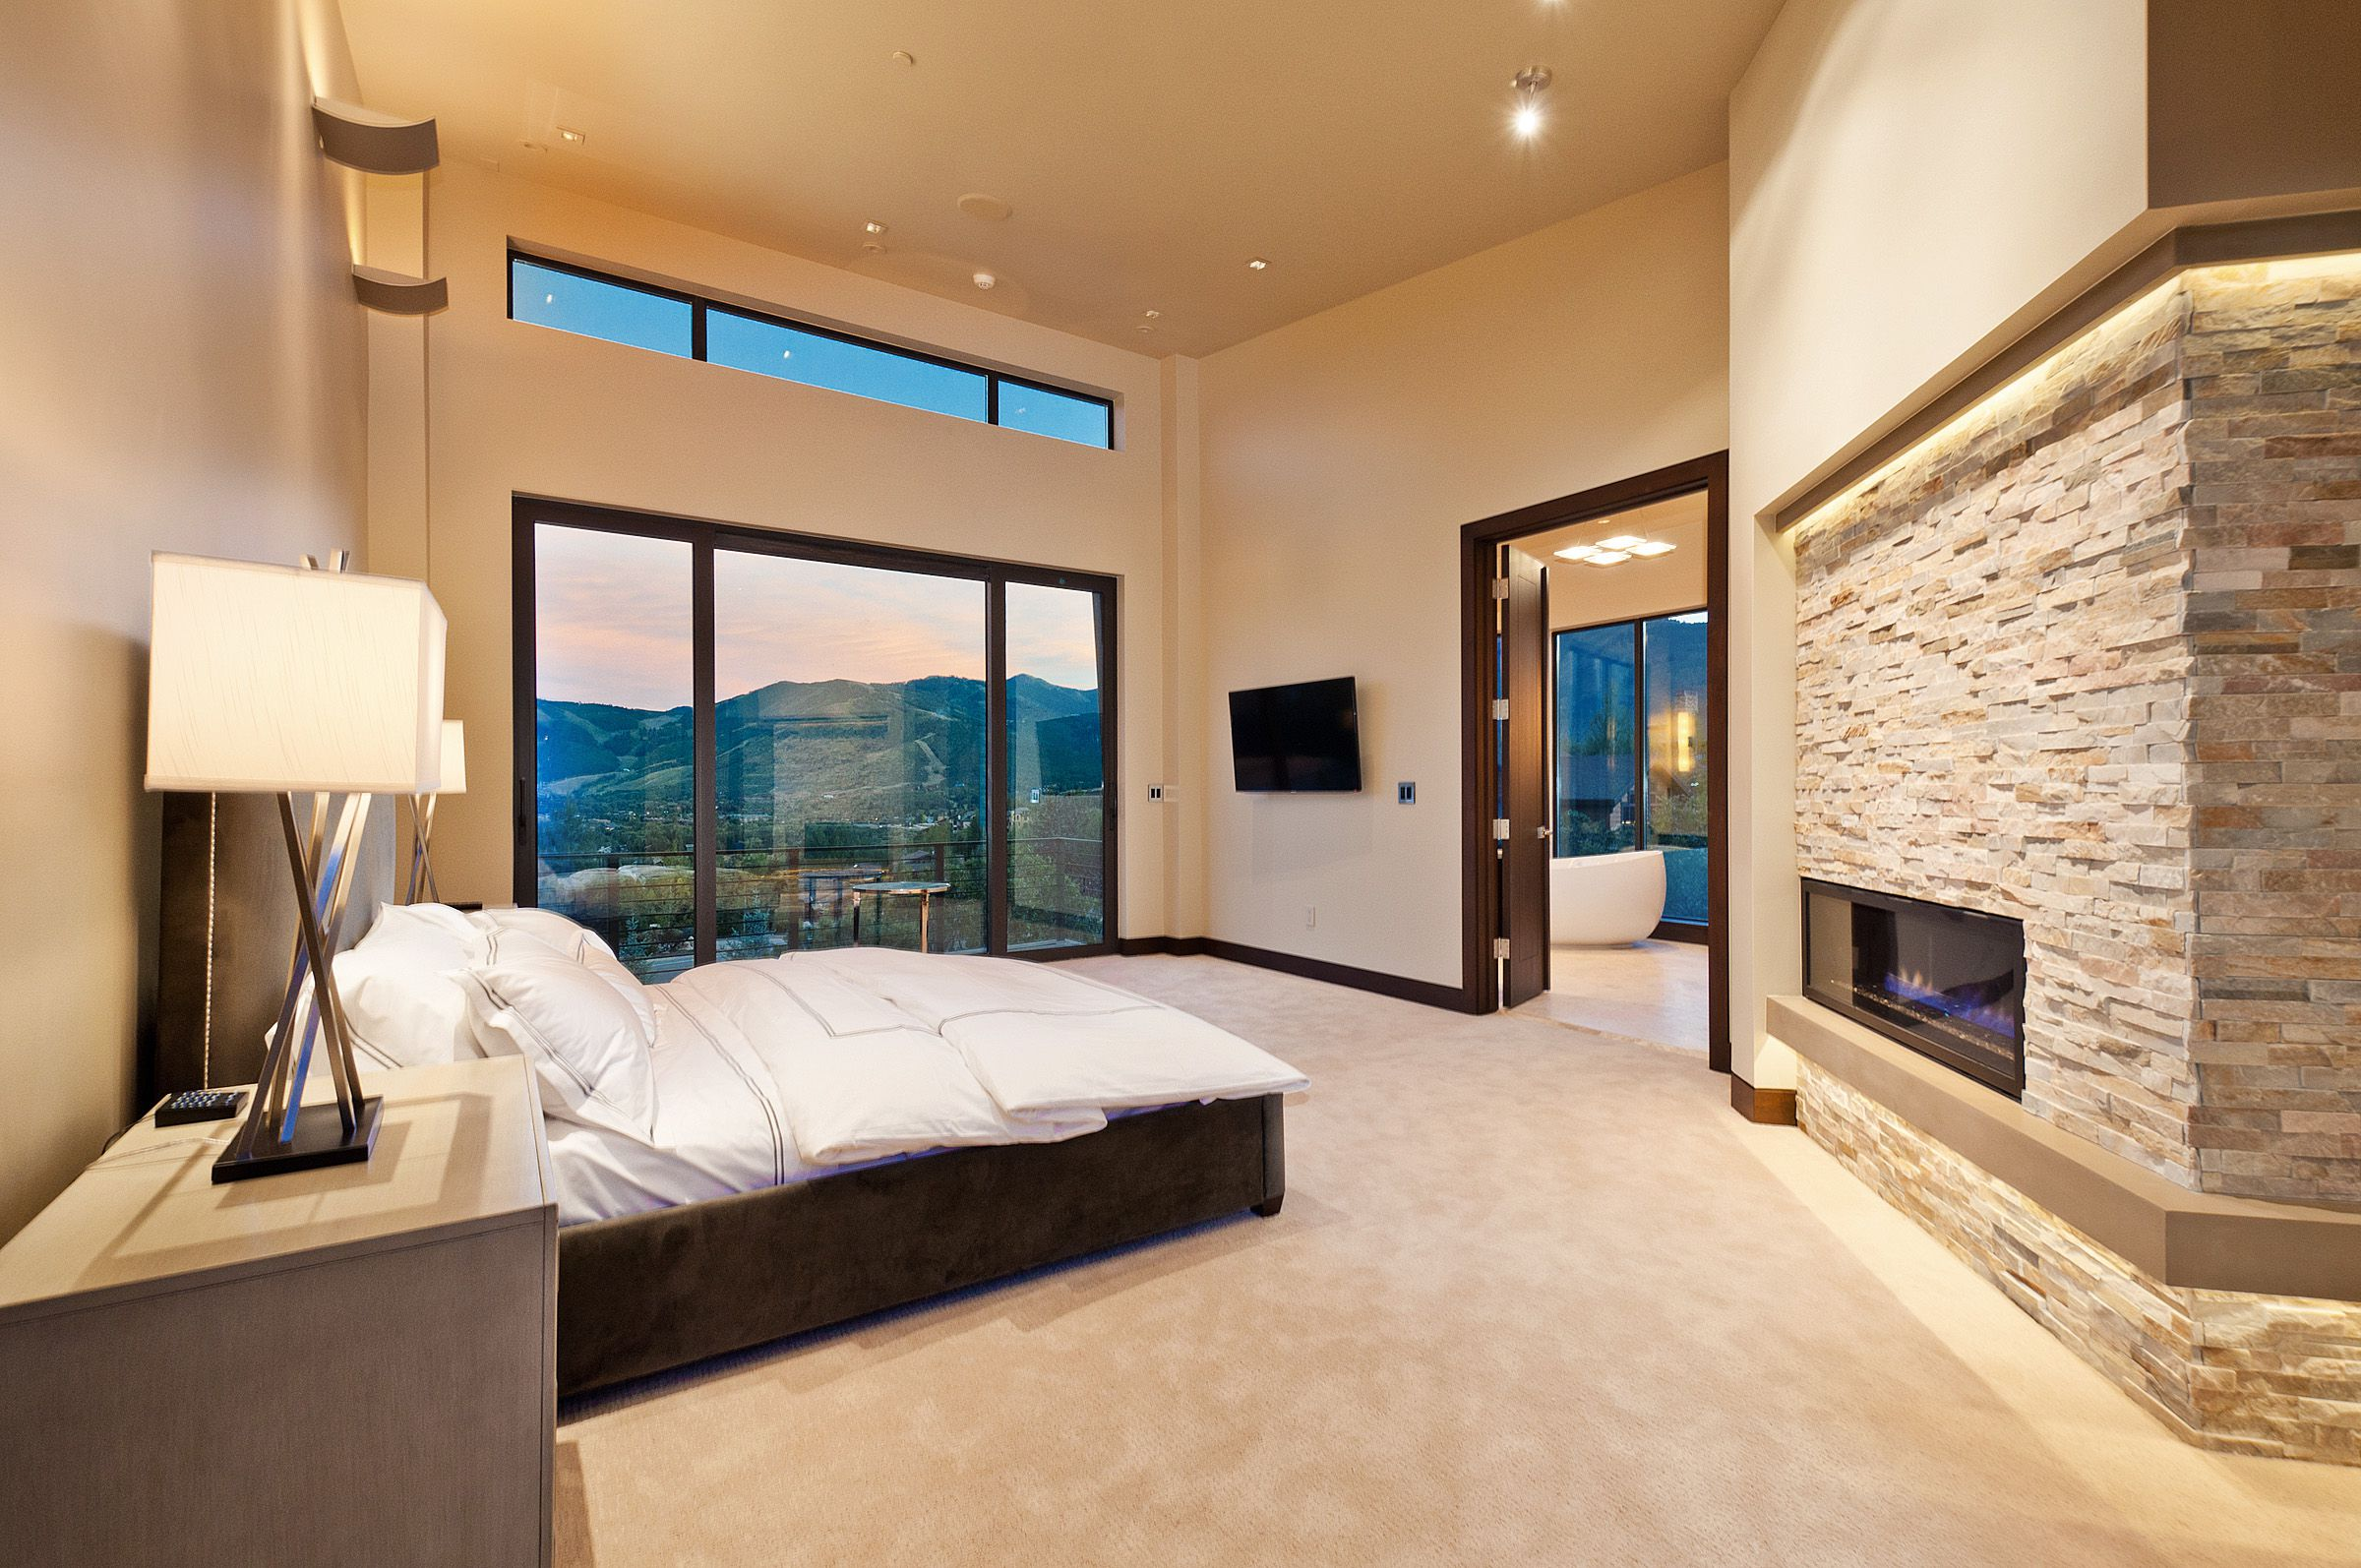 Park city showcase of homes 2012 for Master bedroom on suite